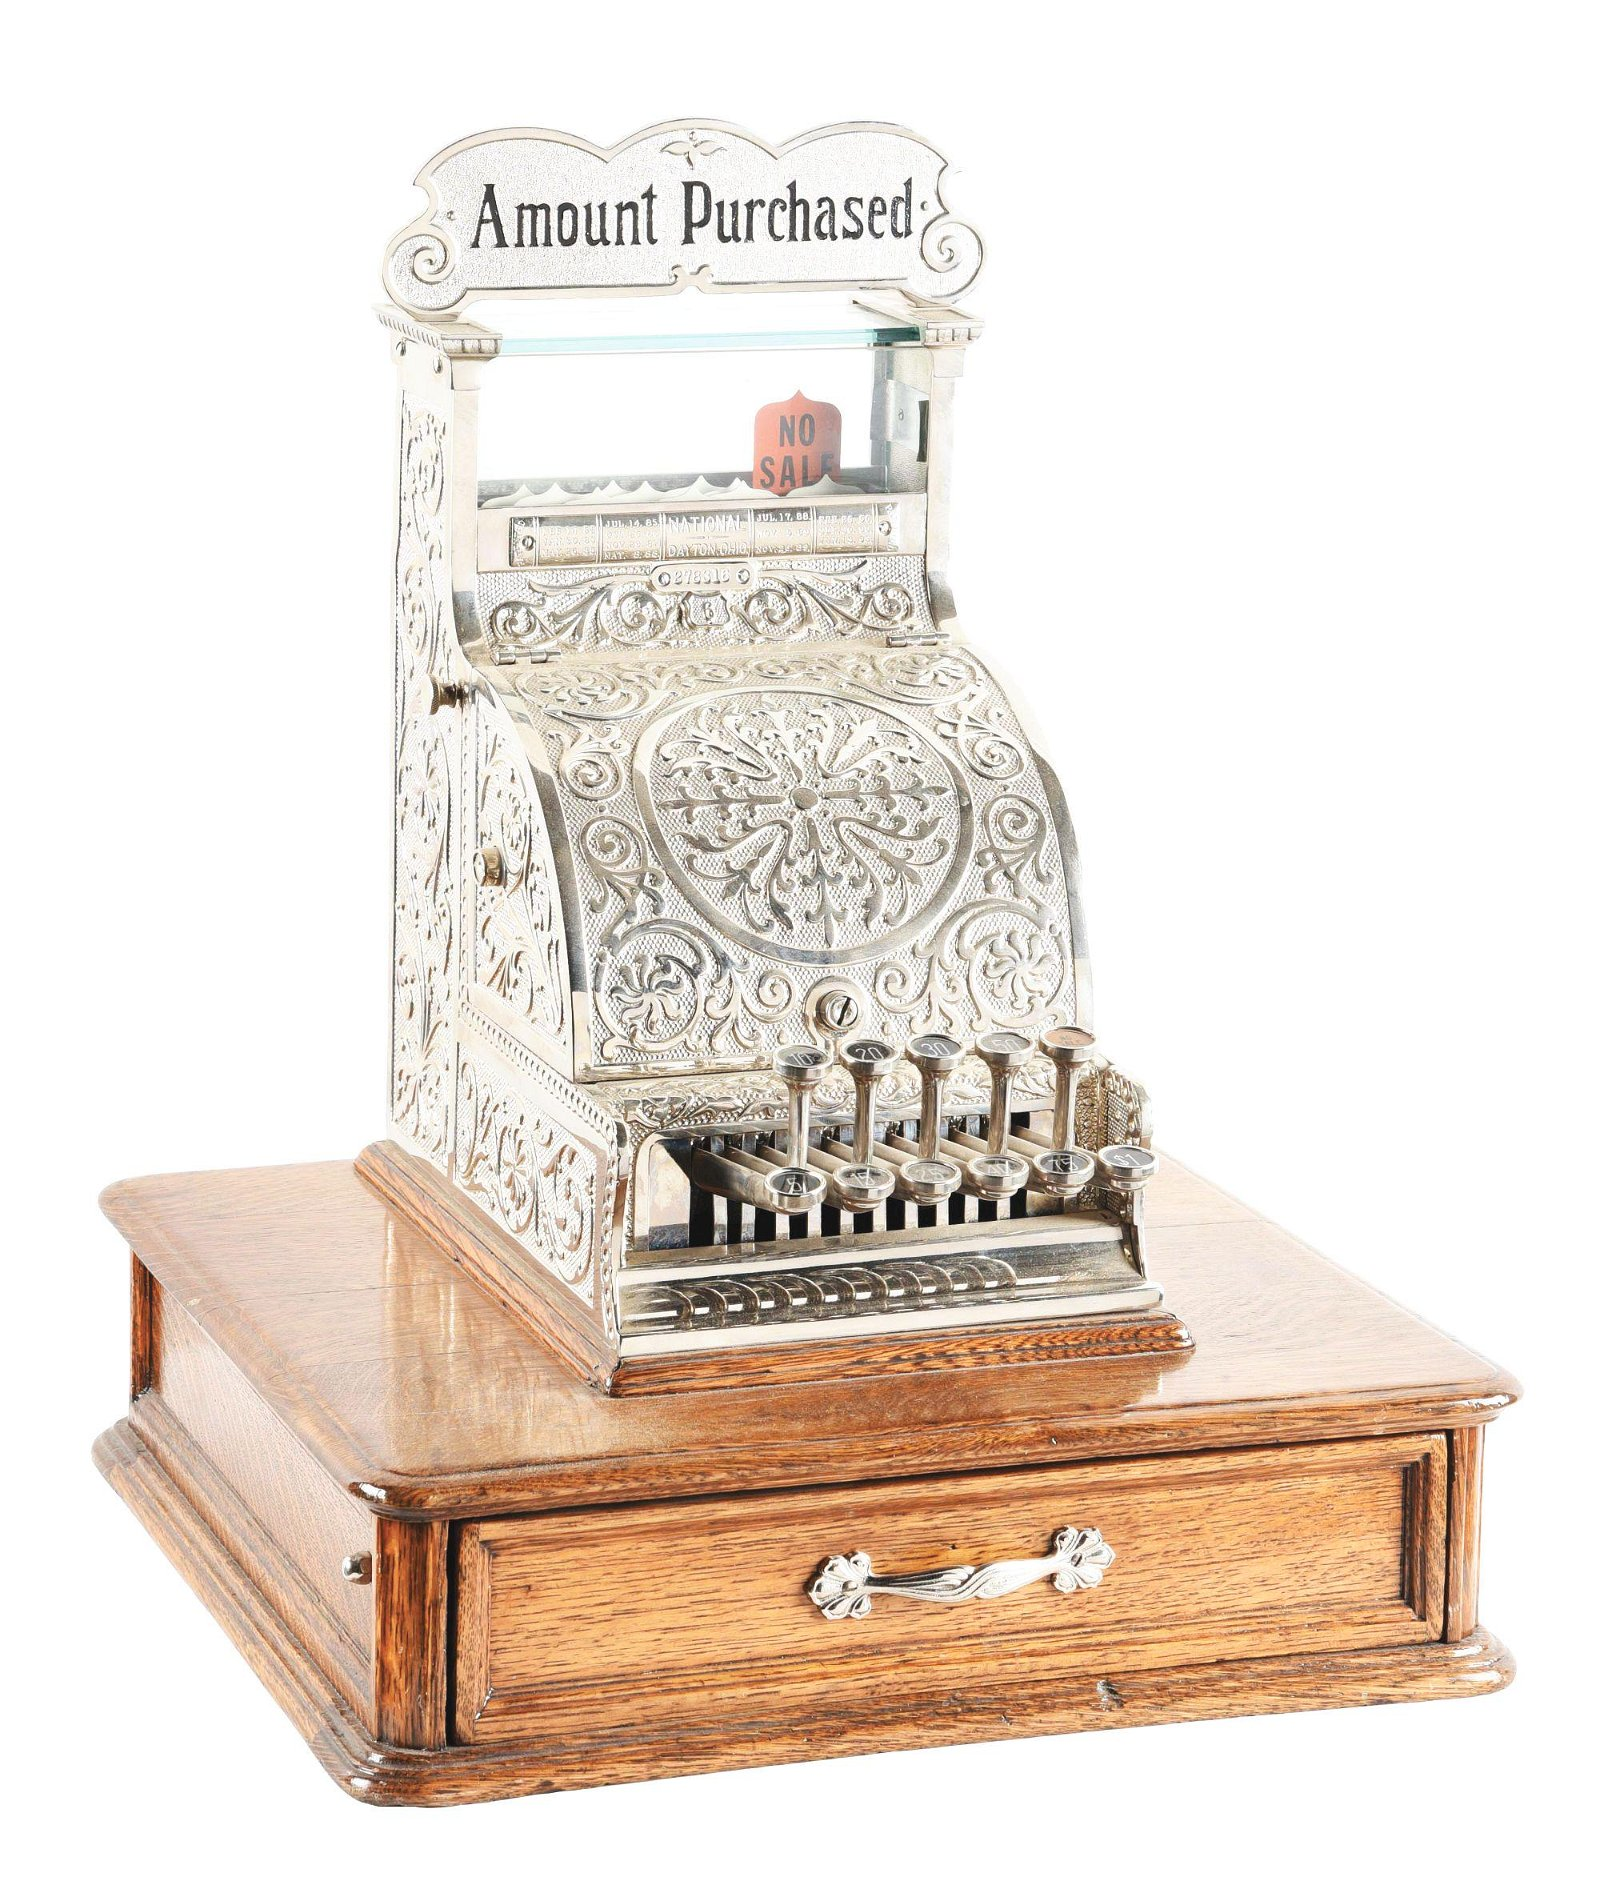 NATIONAL CASH REGISTER CO. MODEL #6.